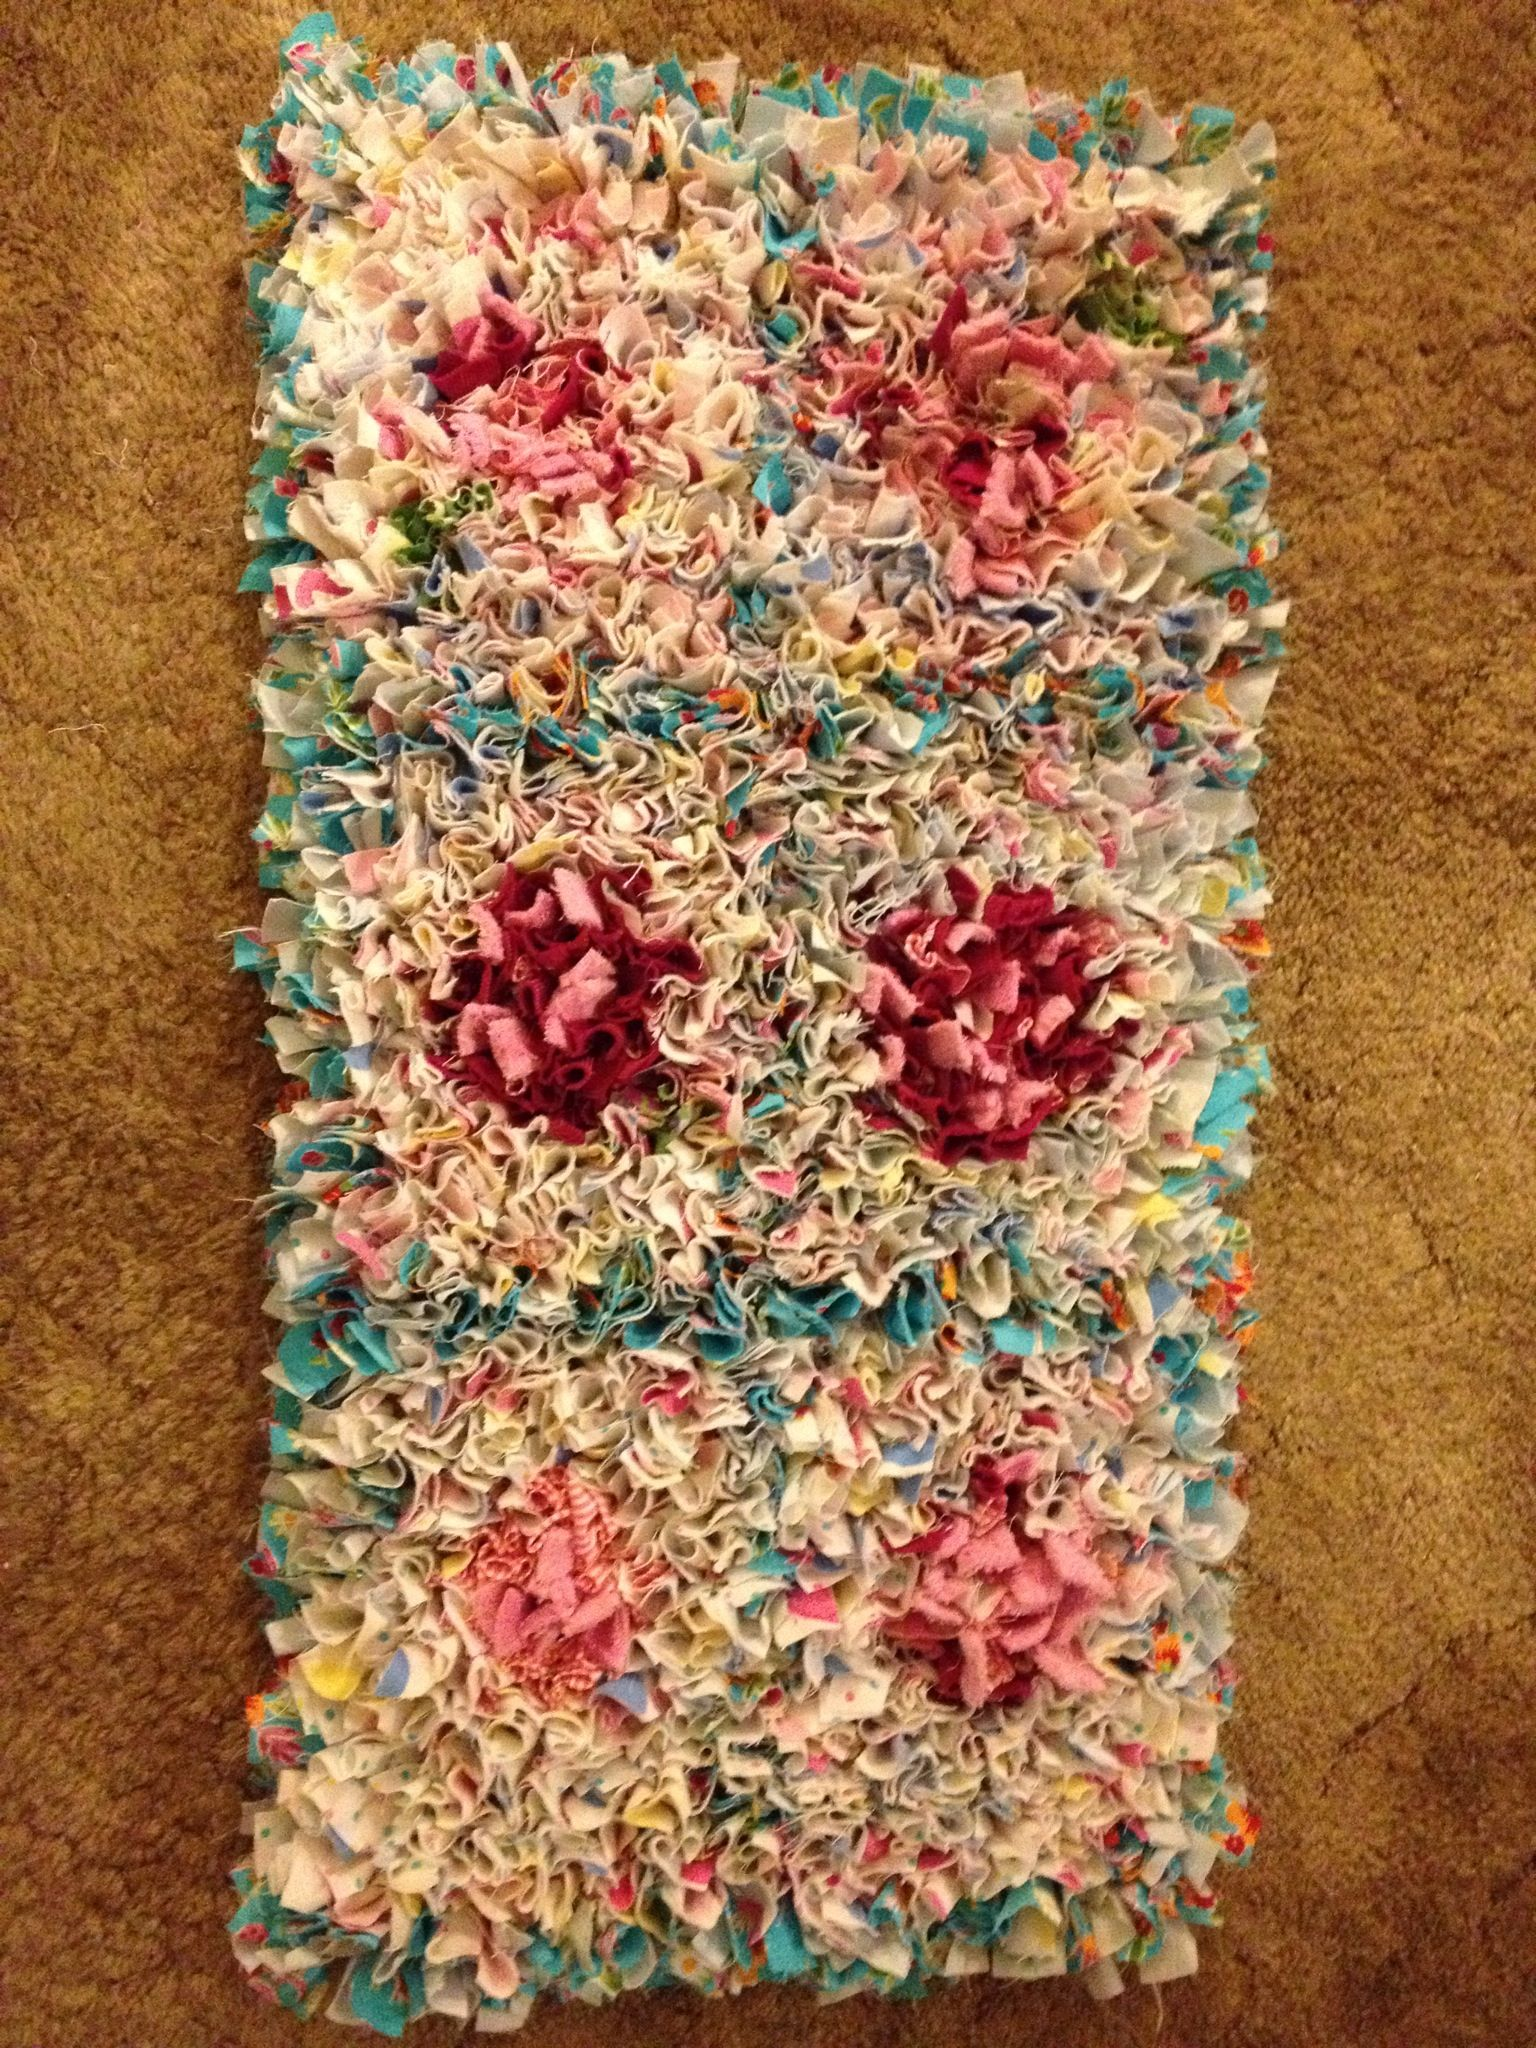 My Second Hand Made Rag Rug For Heather Rugs Lawn Care